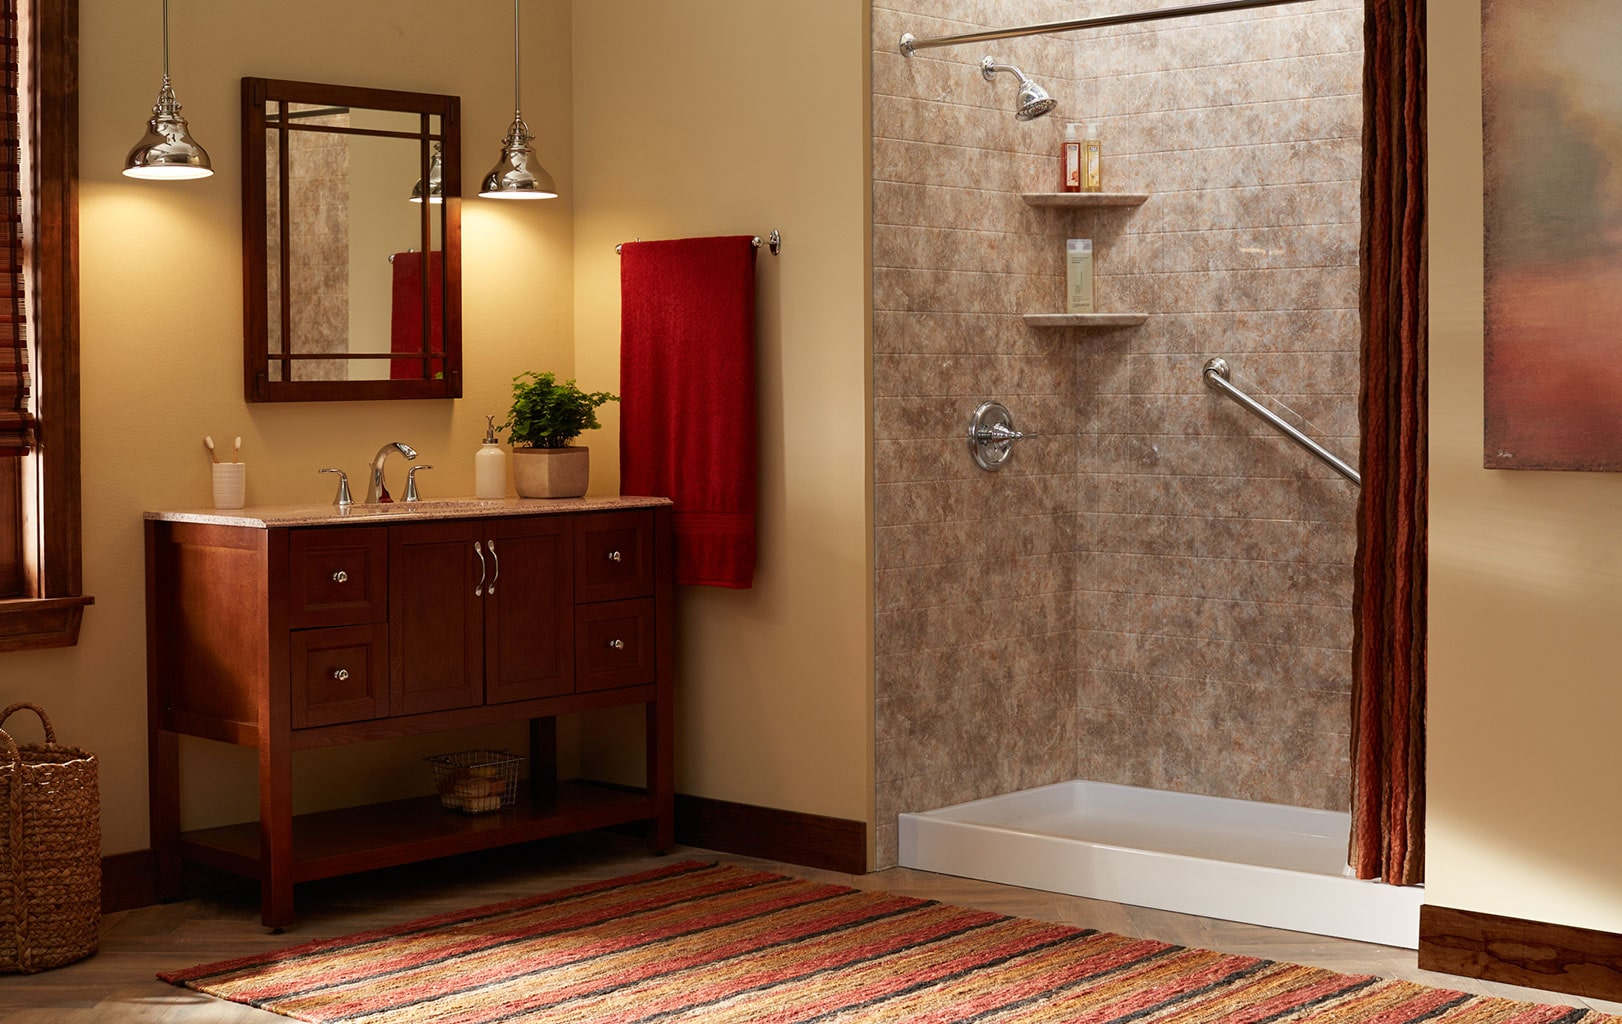 Why Should You Convert Your Tub To A Shower?